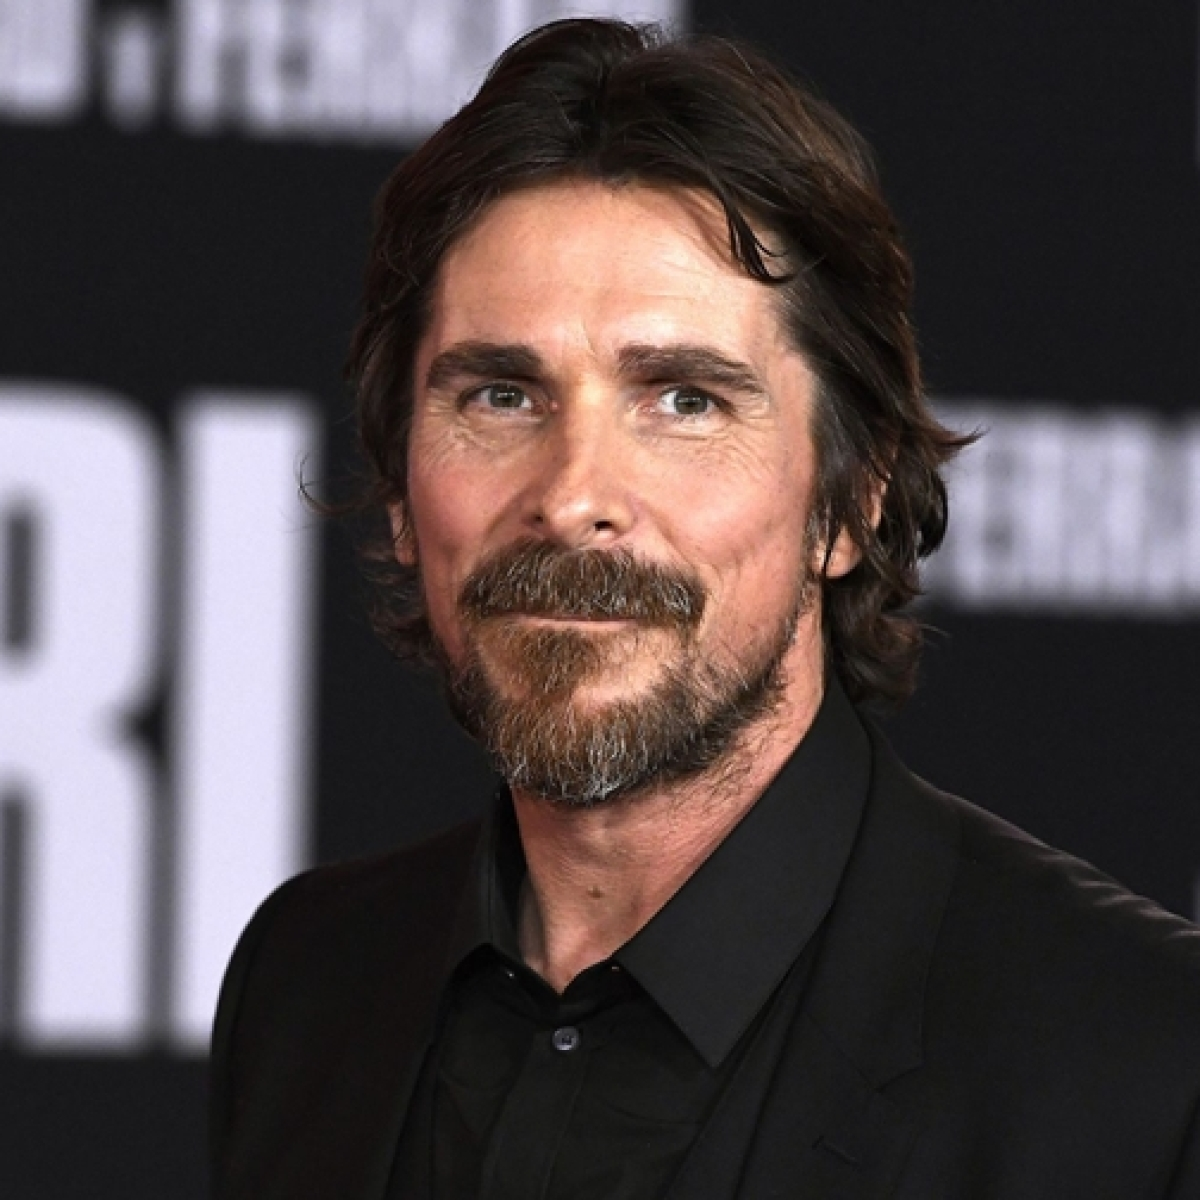 Christian Bale to play the villain in 'Thor: Love And Thunder'